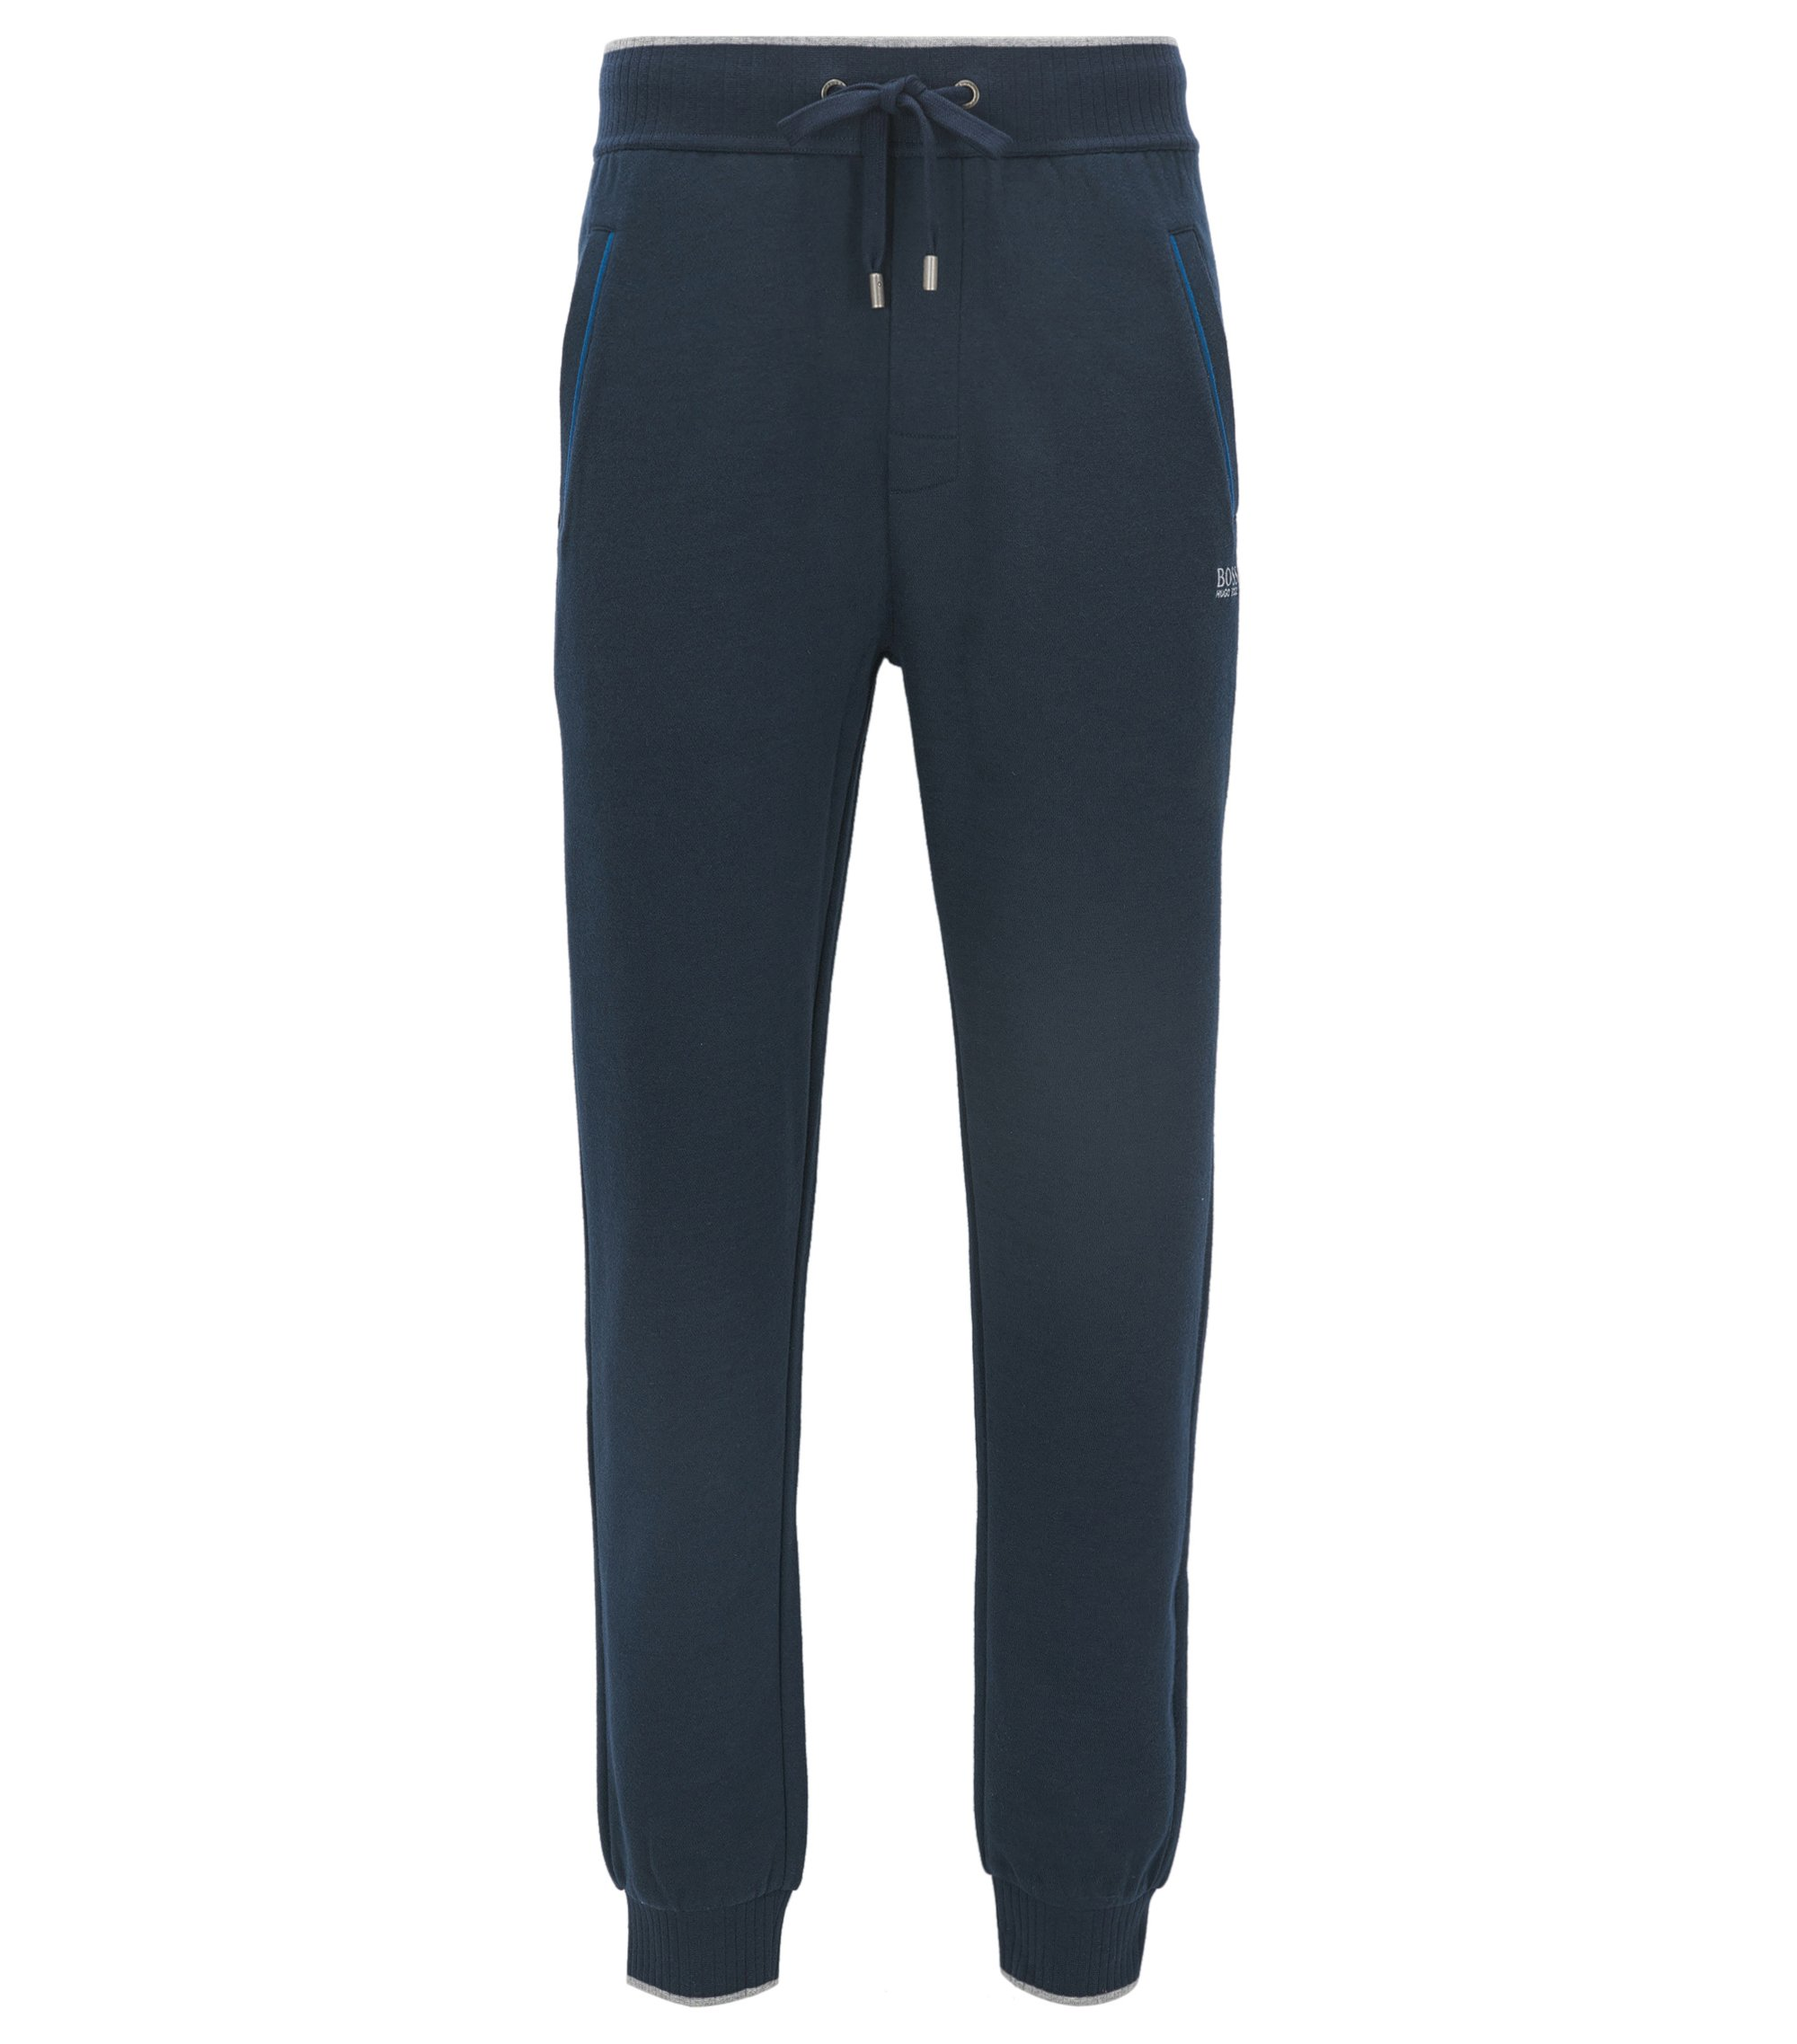 Piped Cotton Blend Jersey Lounge Pant   Authentic Pant, Dark Blue